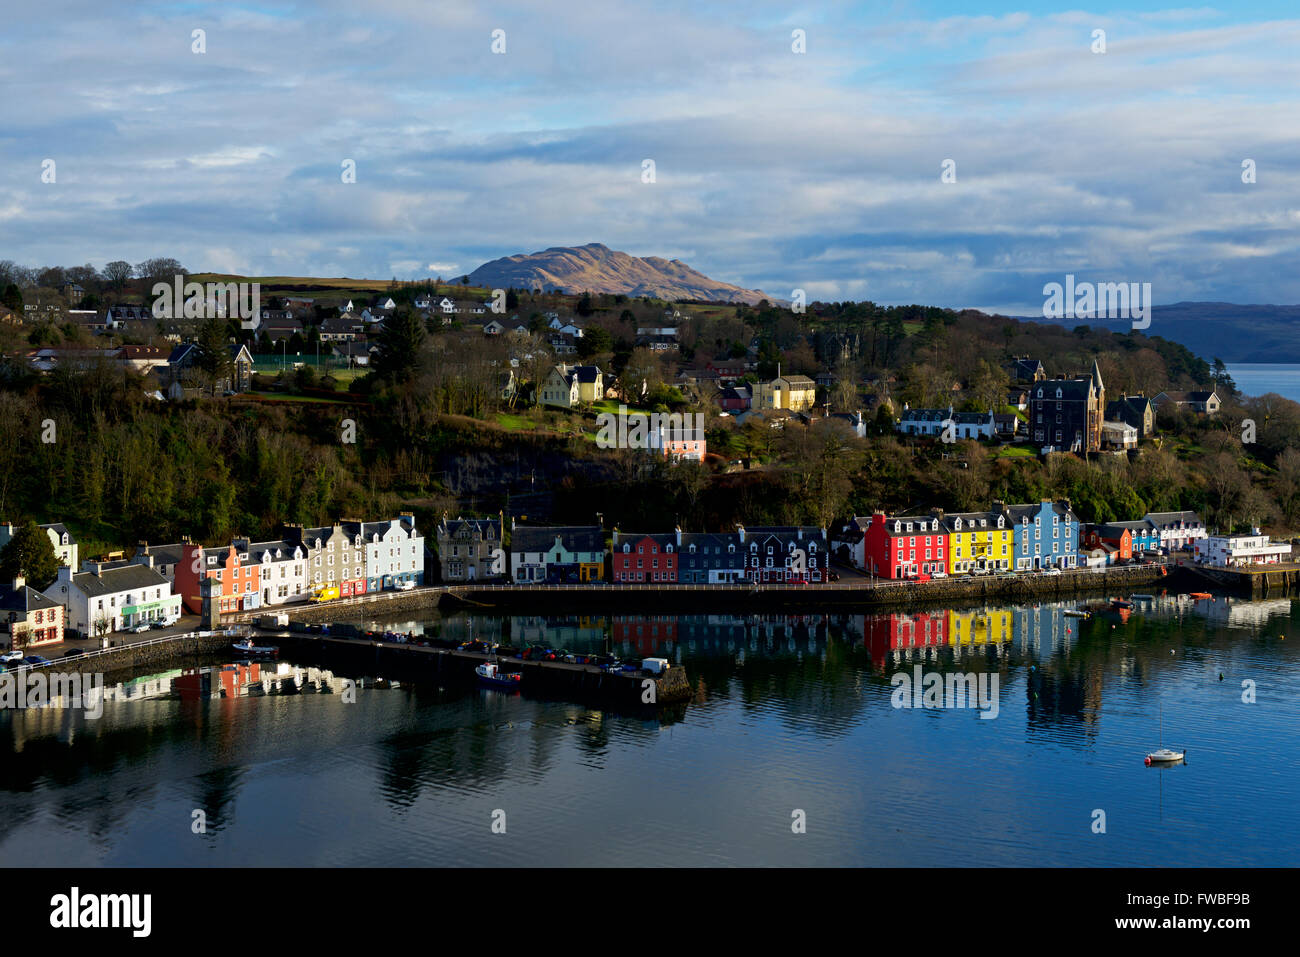 Colourful houses lining the harbour in the port of Tobermory,Isle of Mull, Inner Hebrides, Argyll and Bute, Scotland - Stock Image